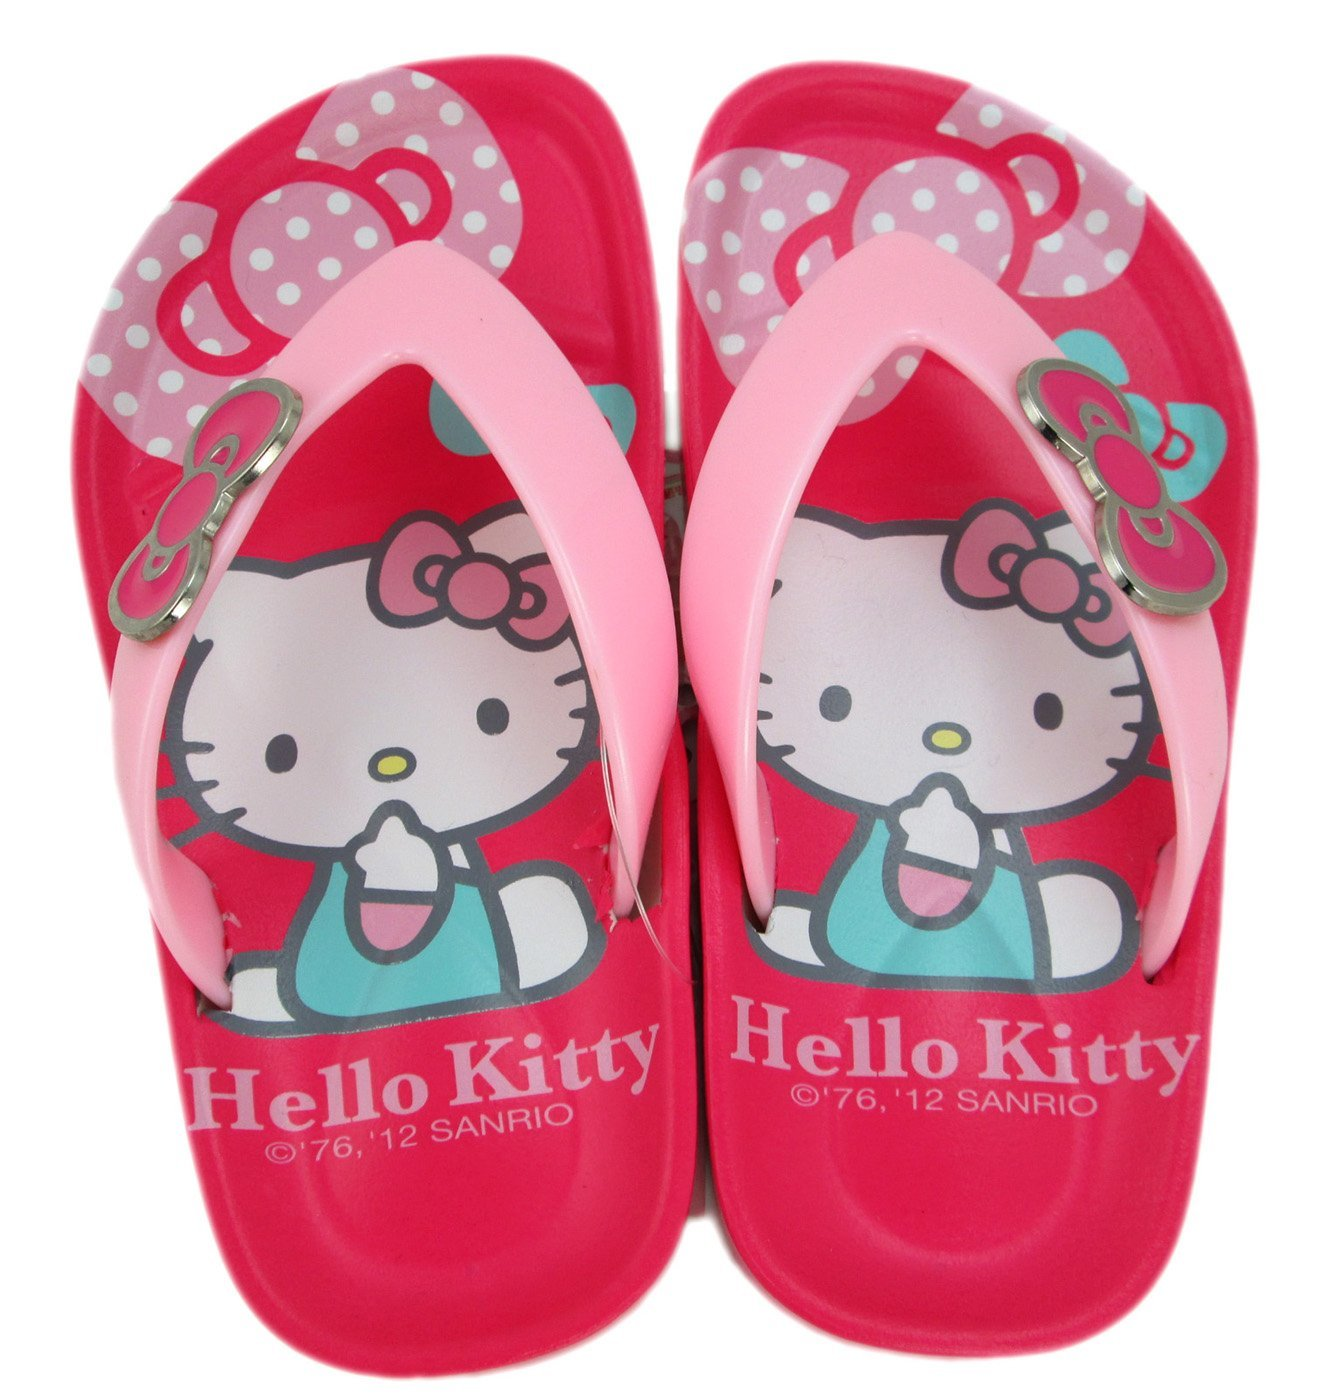 e4cb8181c72e Get Quotations · Size 6 Pink Hello Kitty Flip Flops - Hello Kitty Sandals